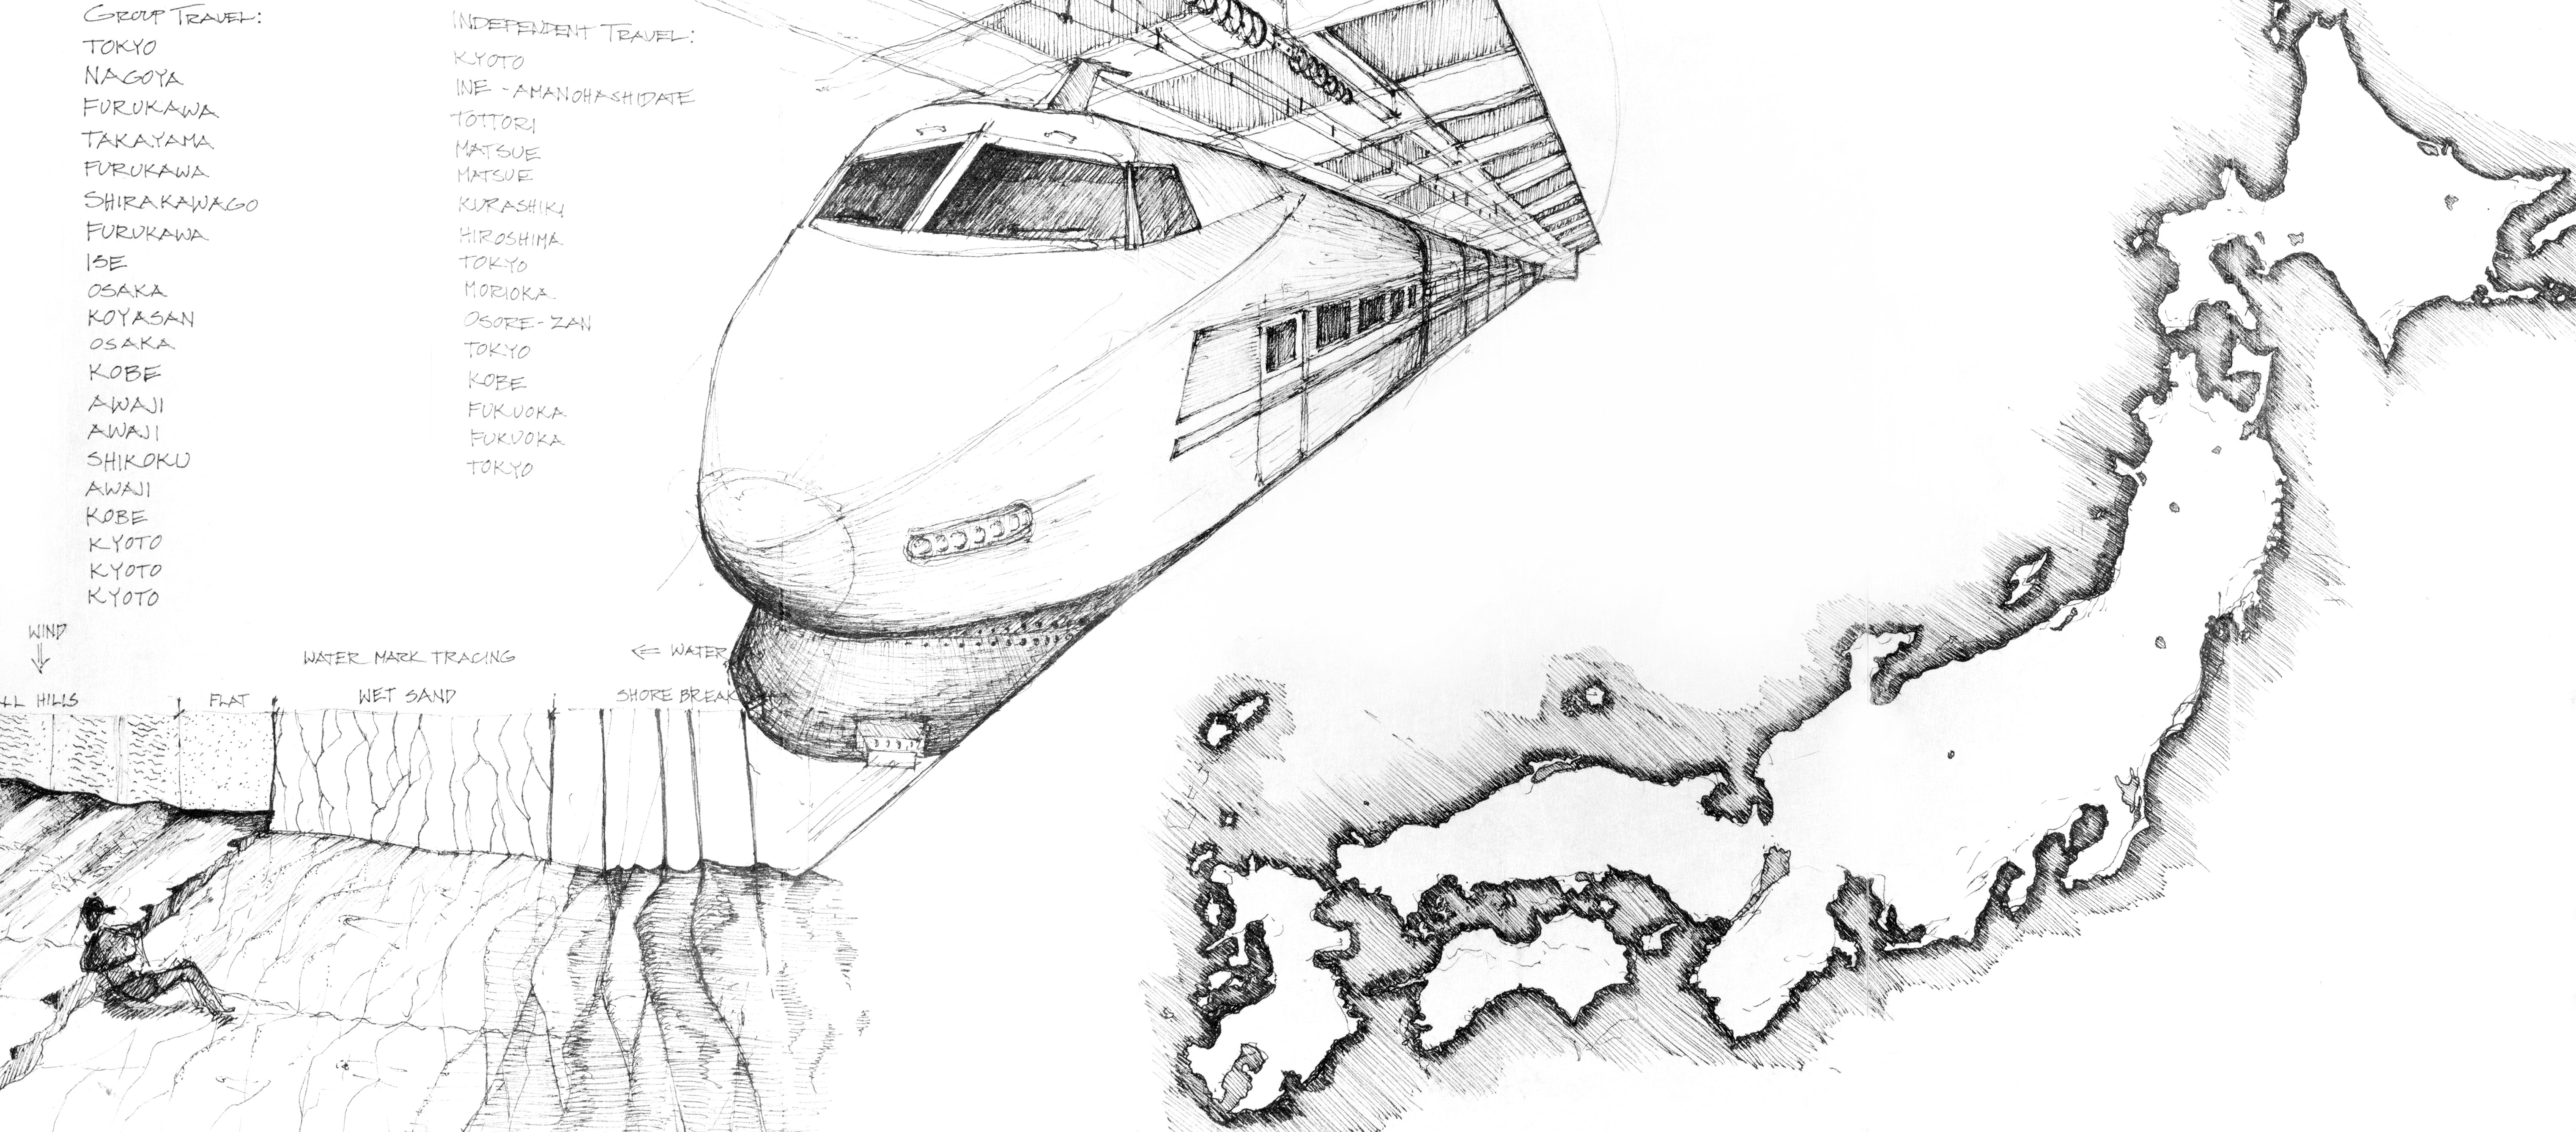 Bullet train maglev technology in Japan with the